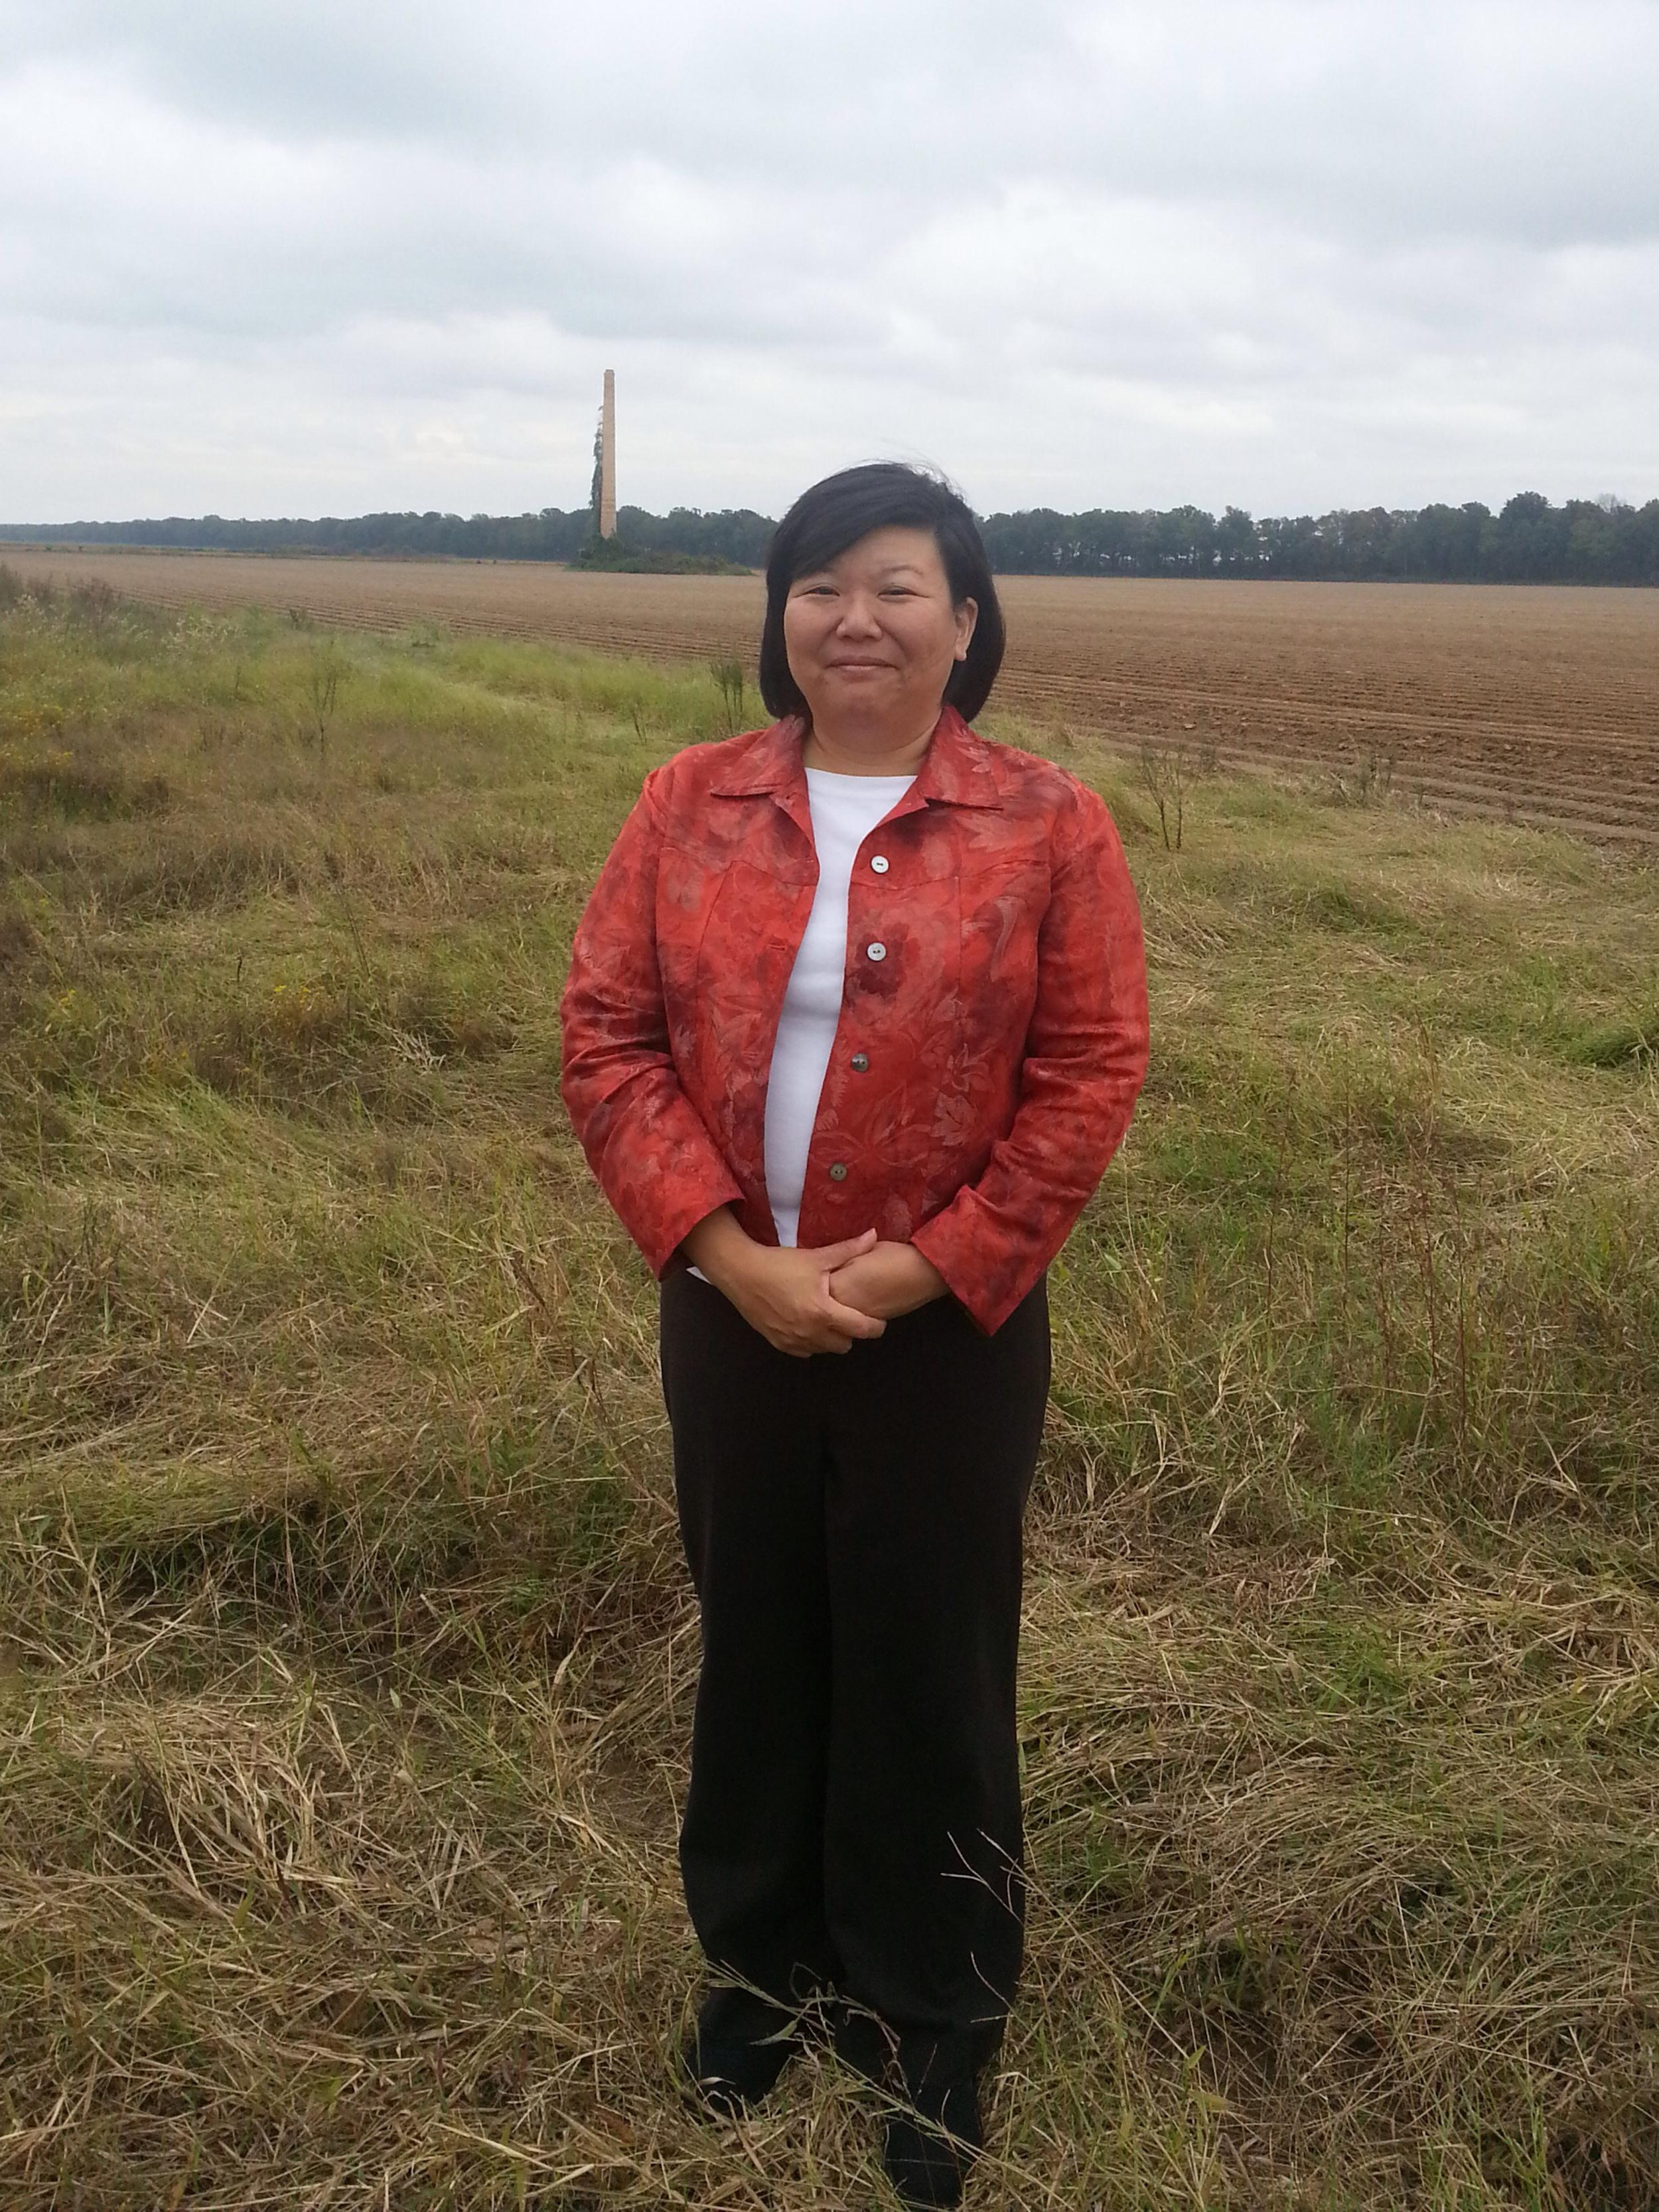 Lisa Hasegawa stands at the former site of the Jerome, Arkansas internment camp, where her family was held.